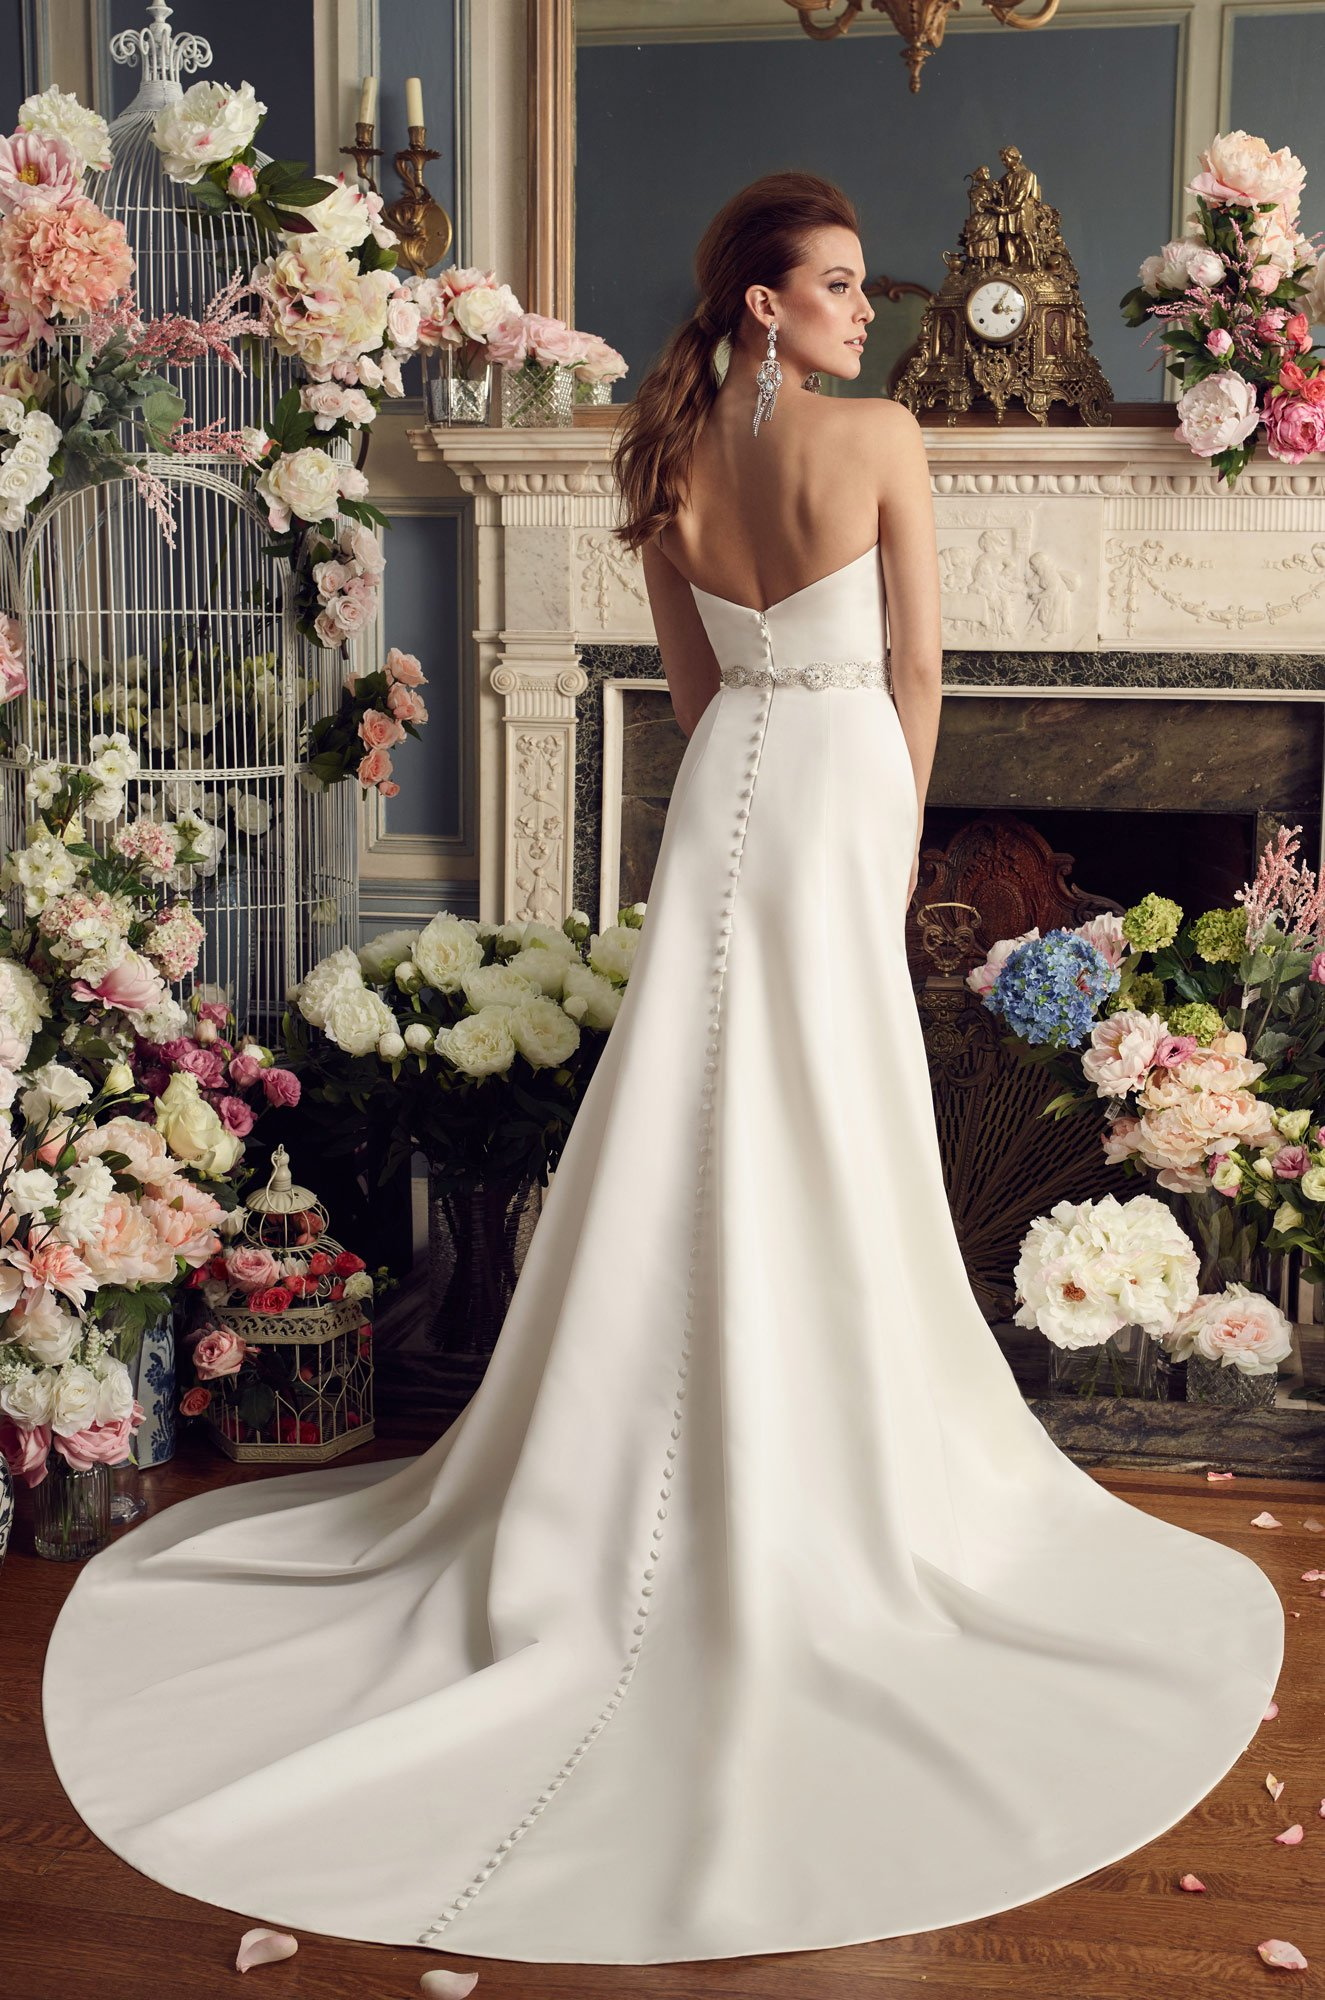 Sweetheart Satin Wedding Dress - Style #2170 | Mikaella Bridal